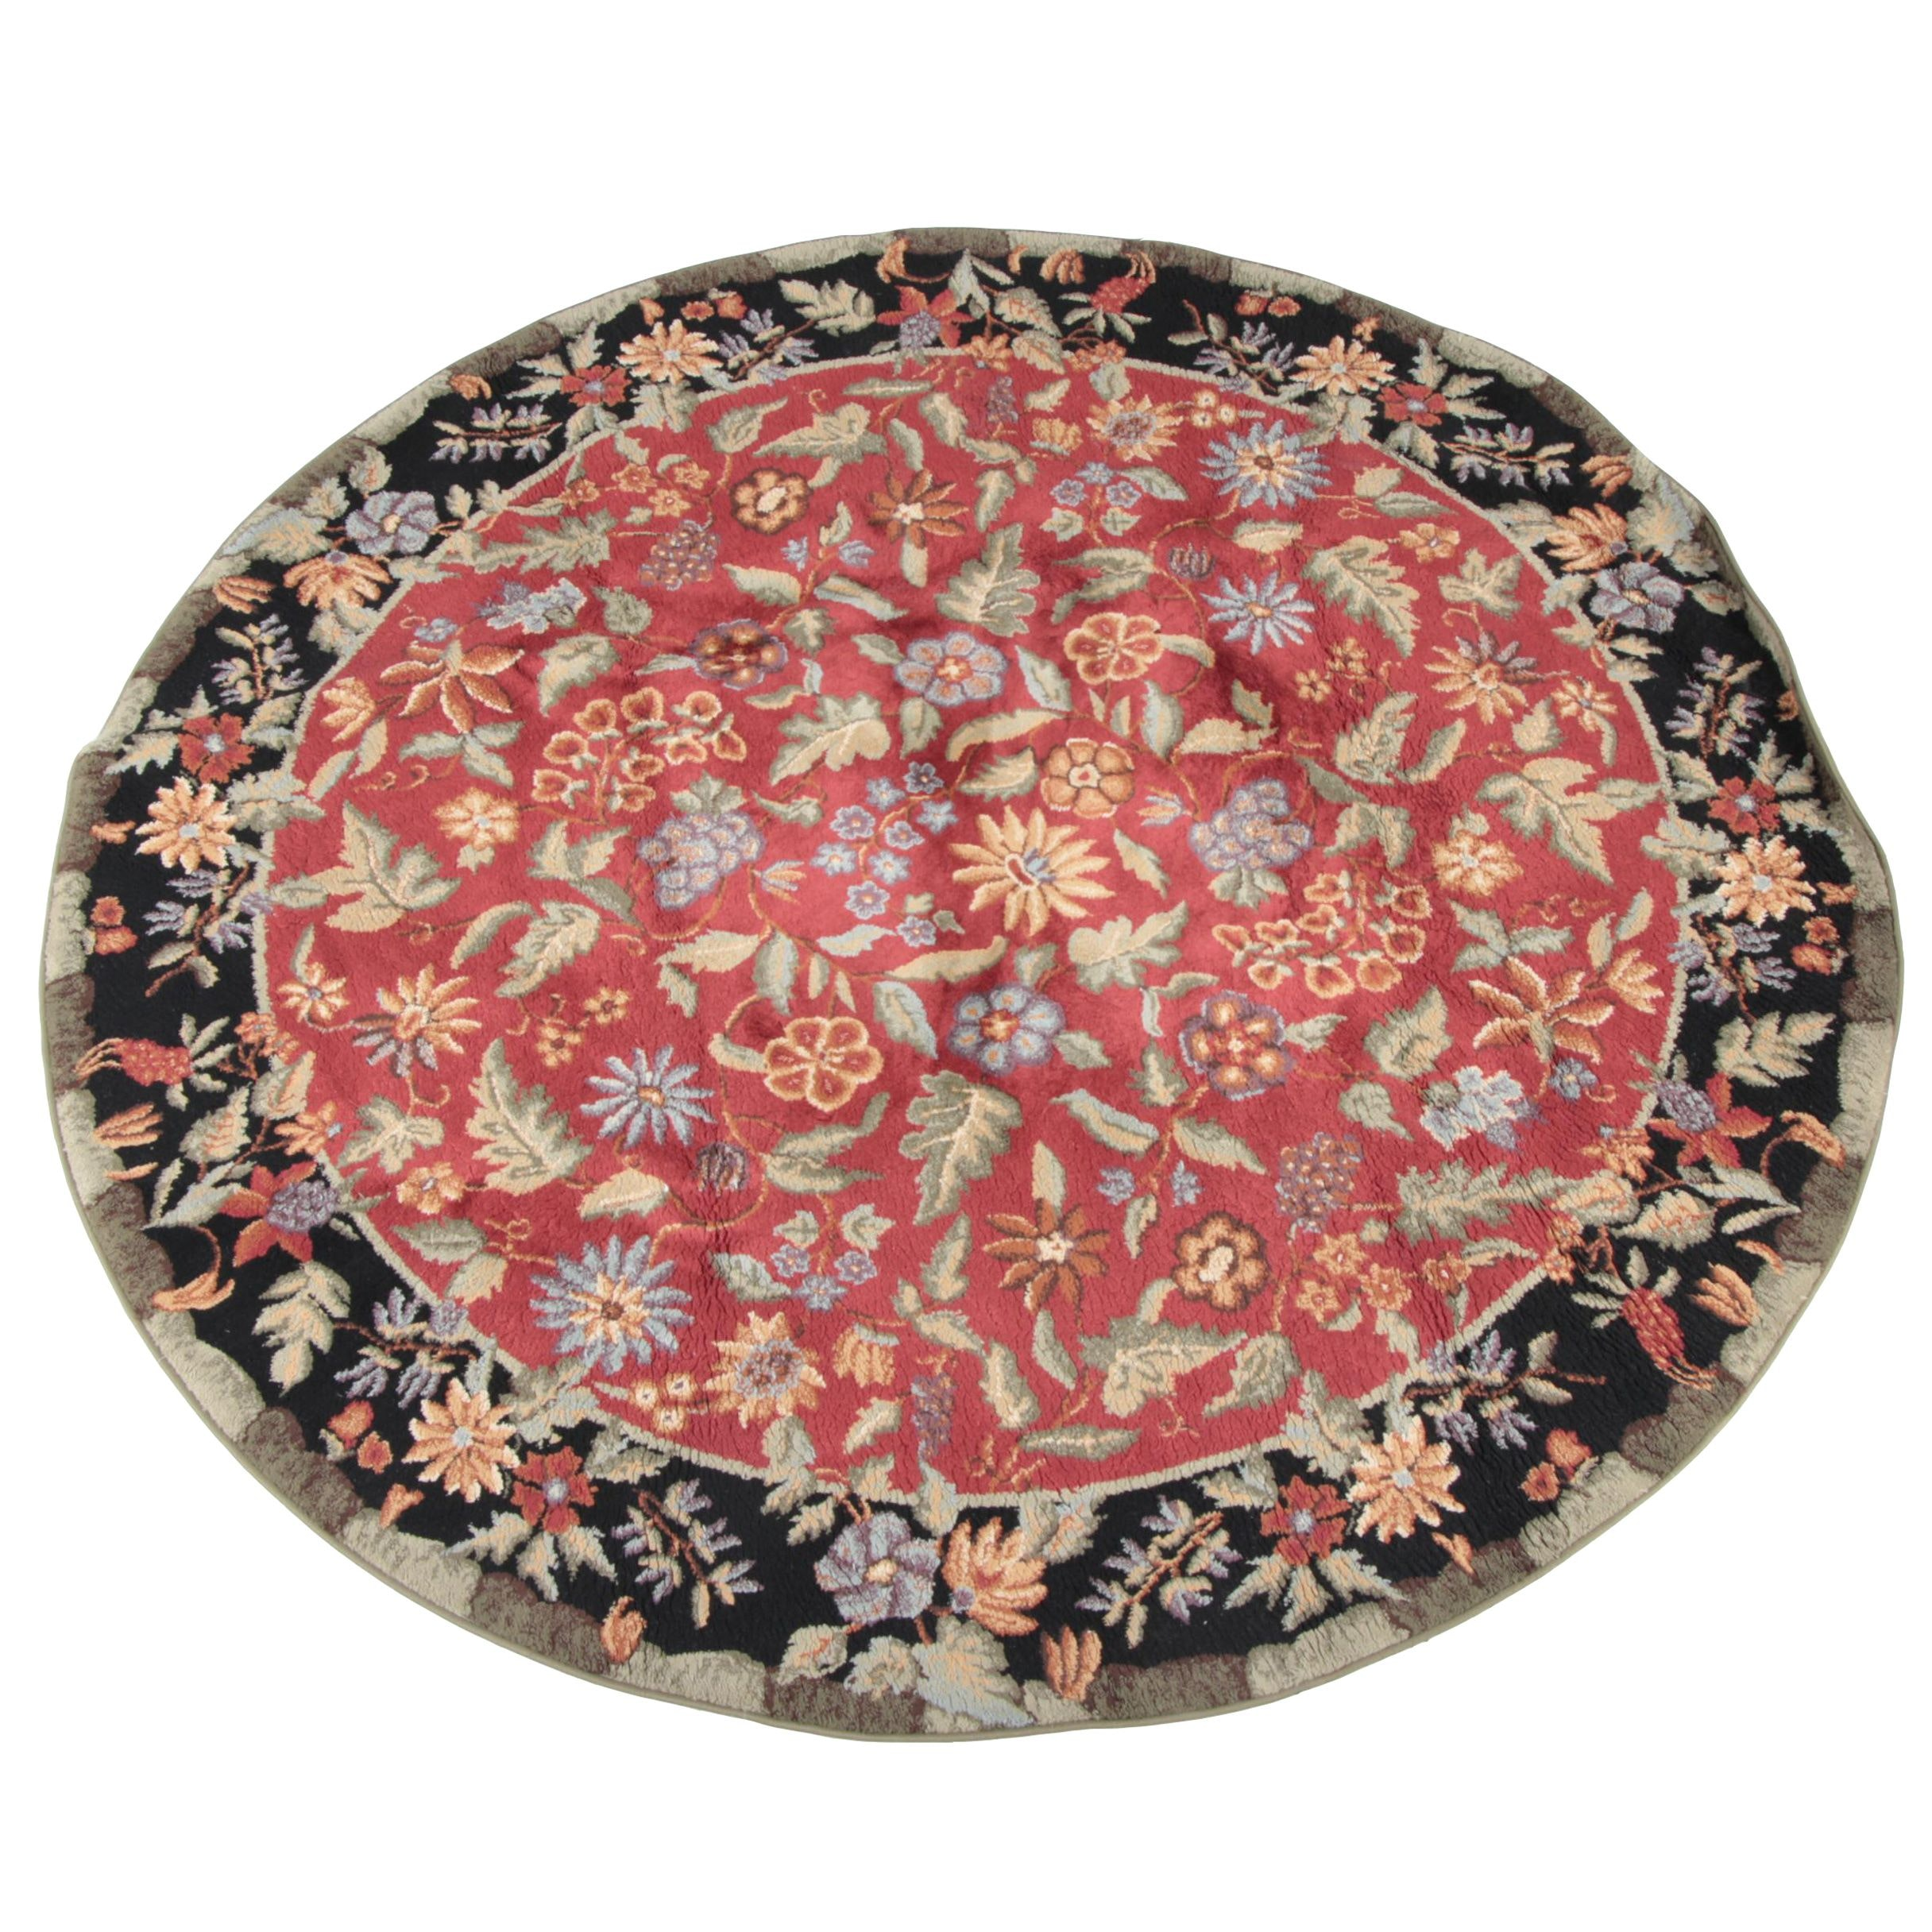 Power-Loomed Floral Round Wool Area Rug.